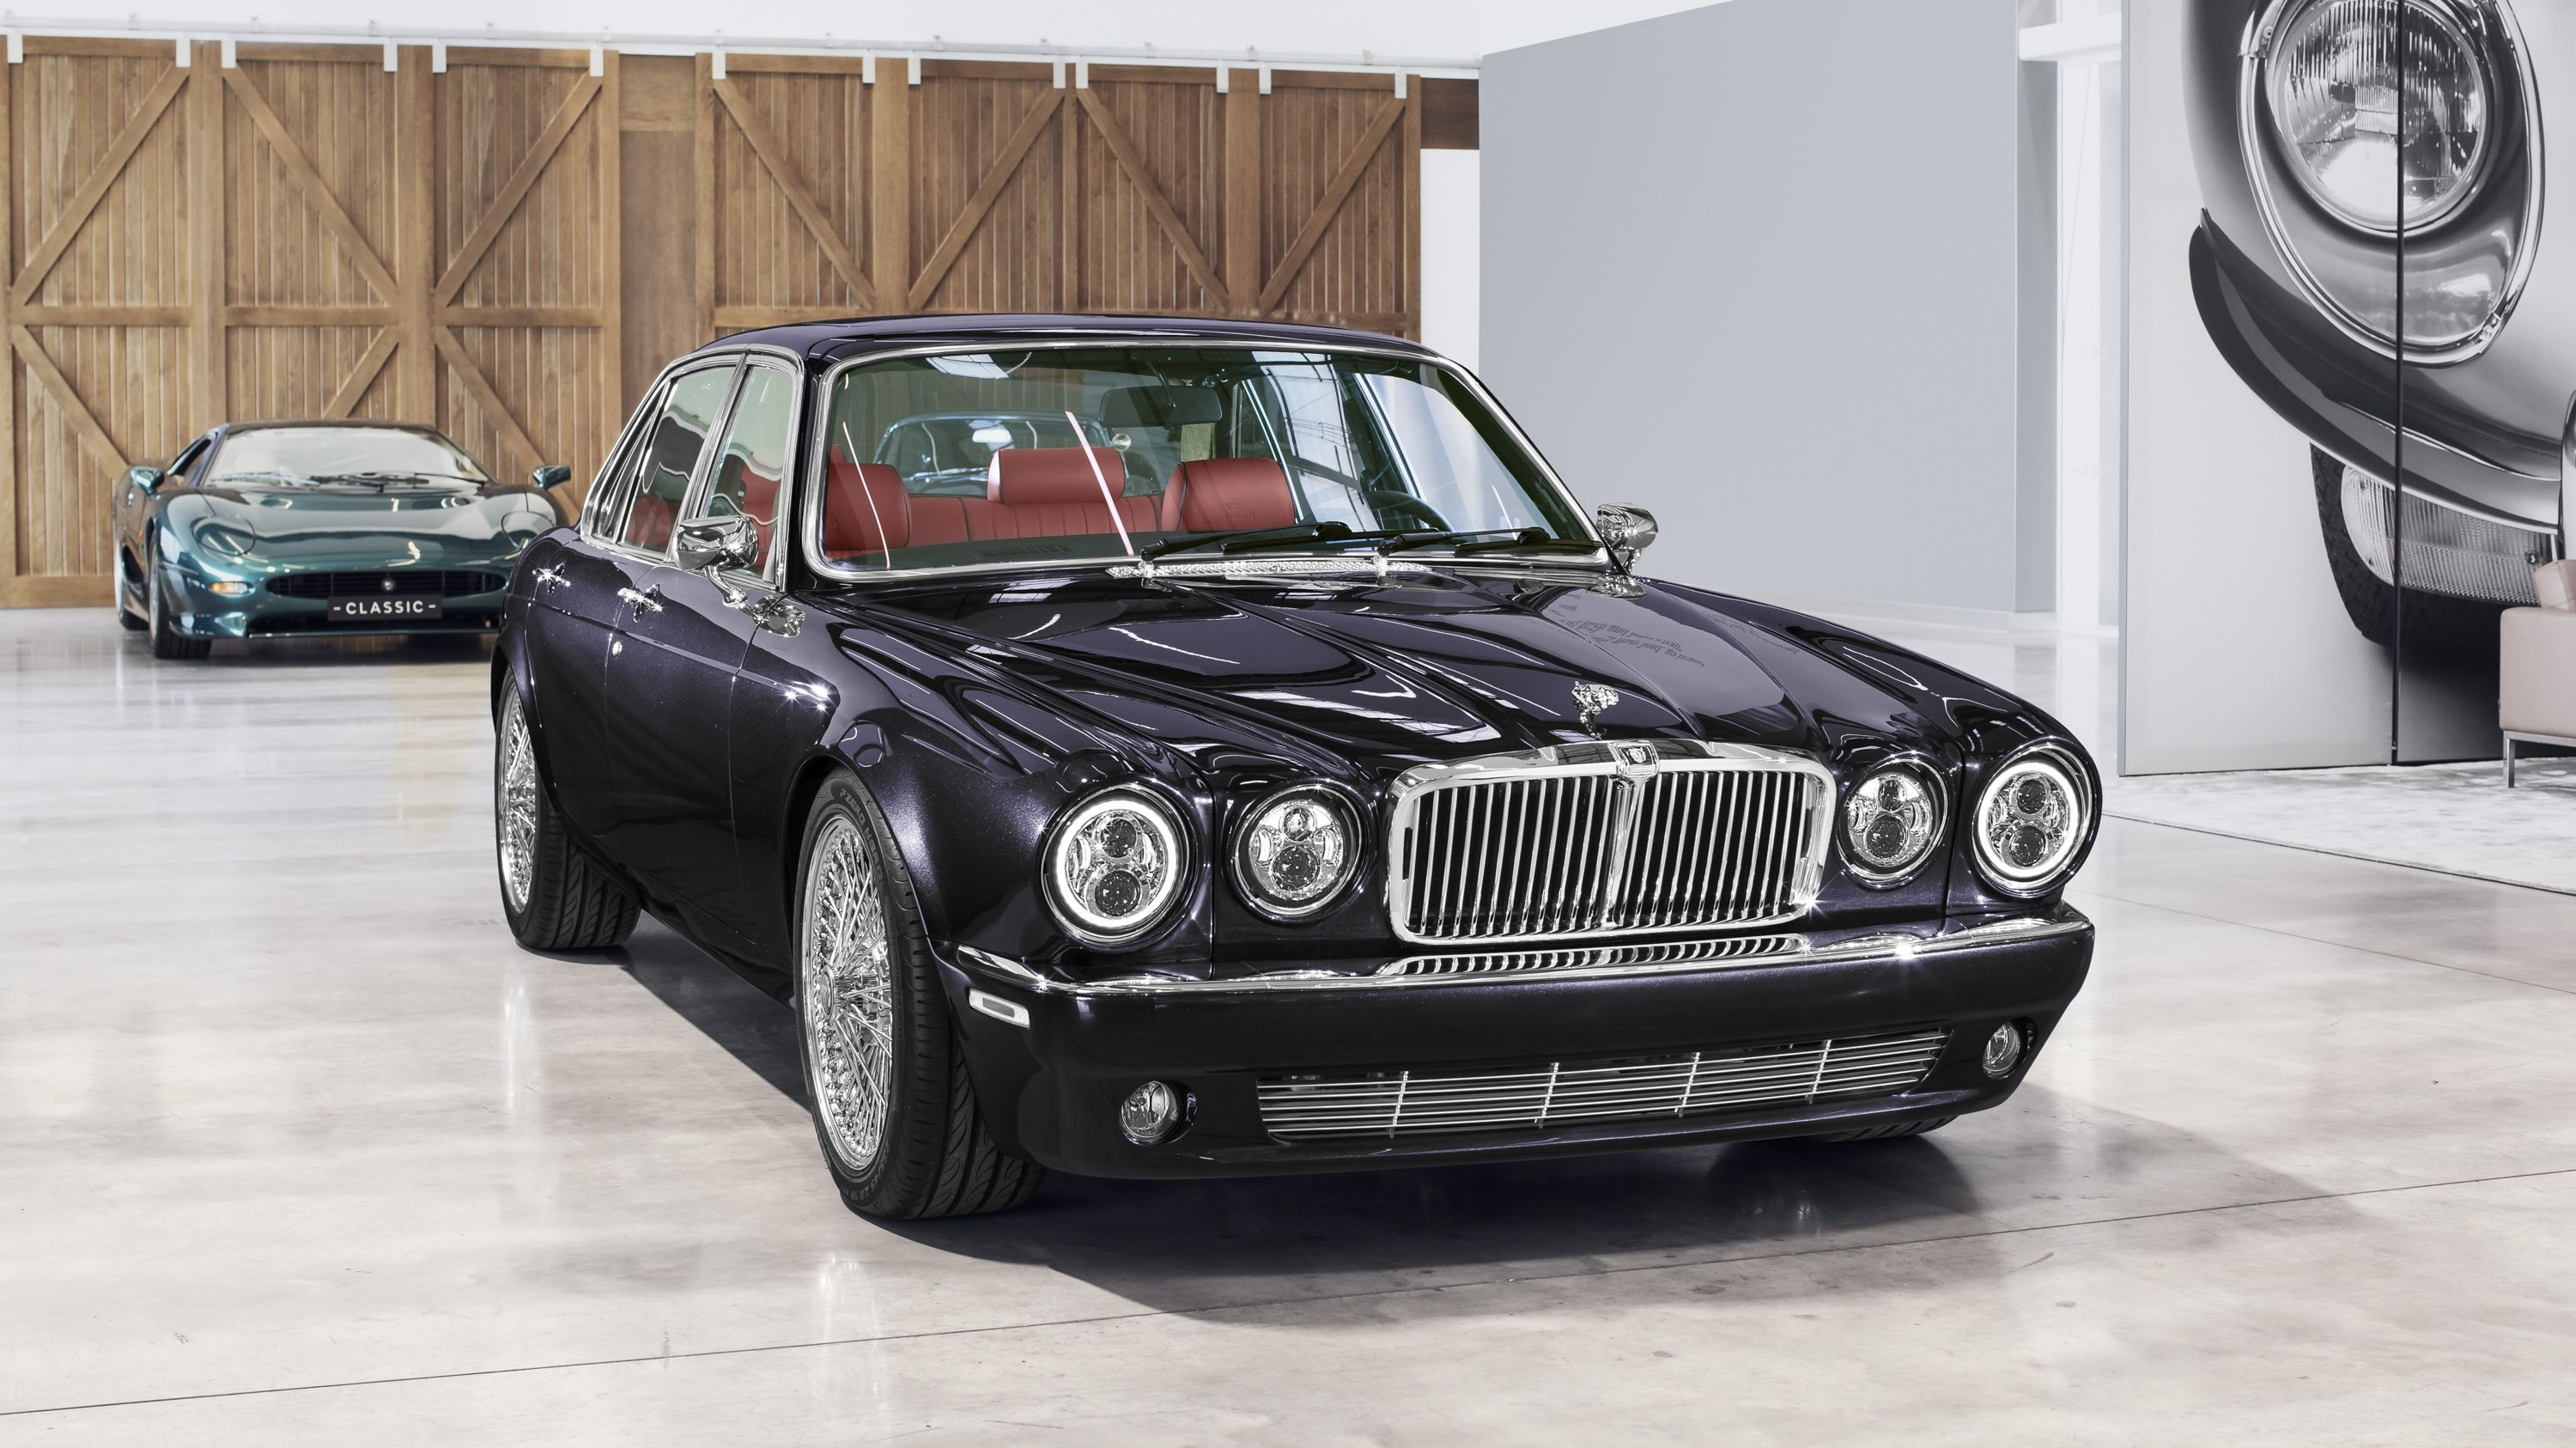 9100760e154ea35ceca0ea0c399dae38 Take A Look About 1990 Jaguar Xj6